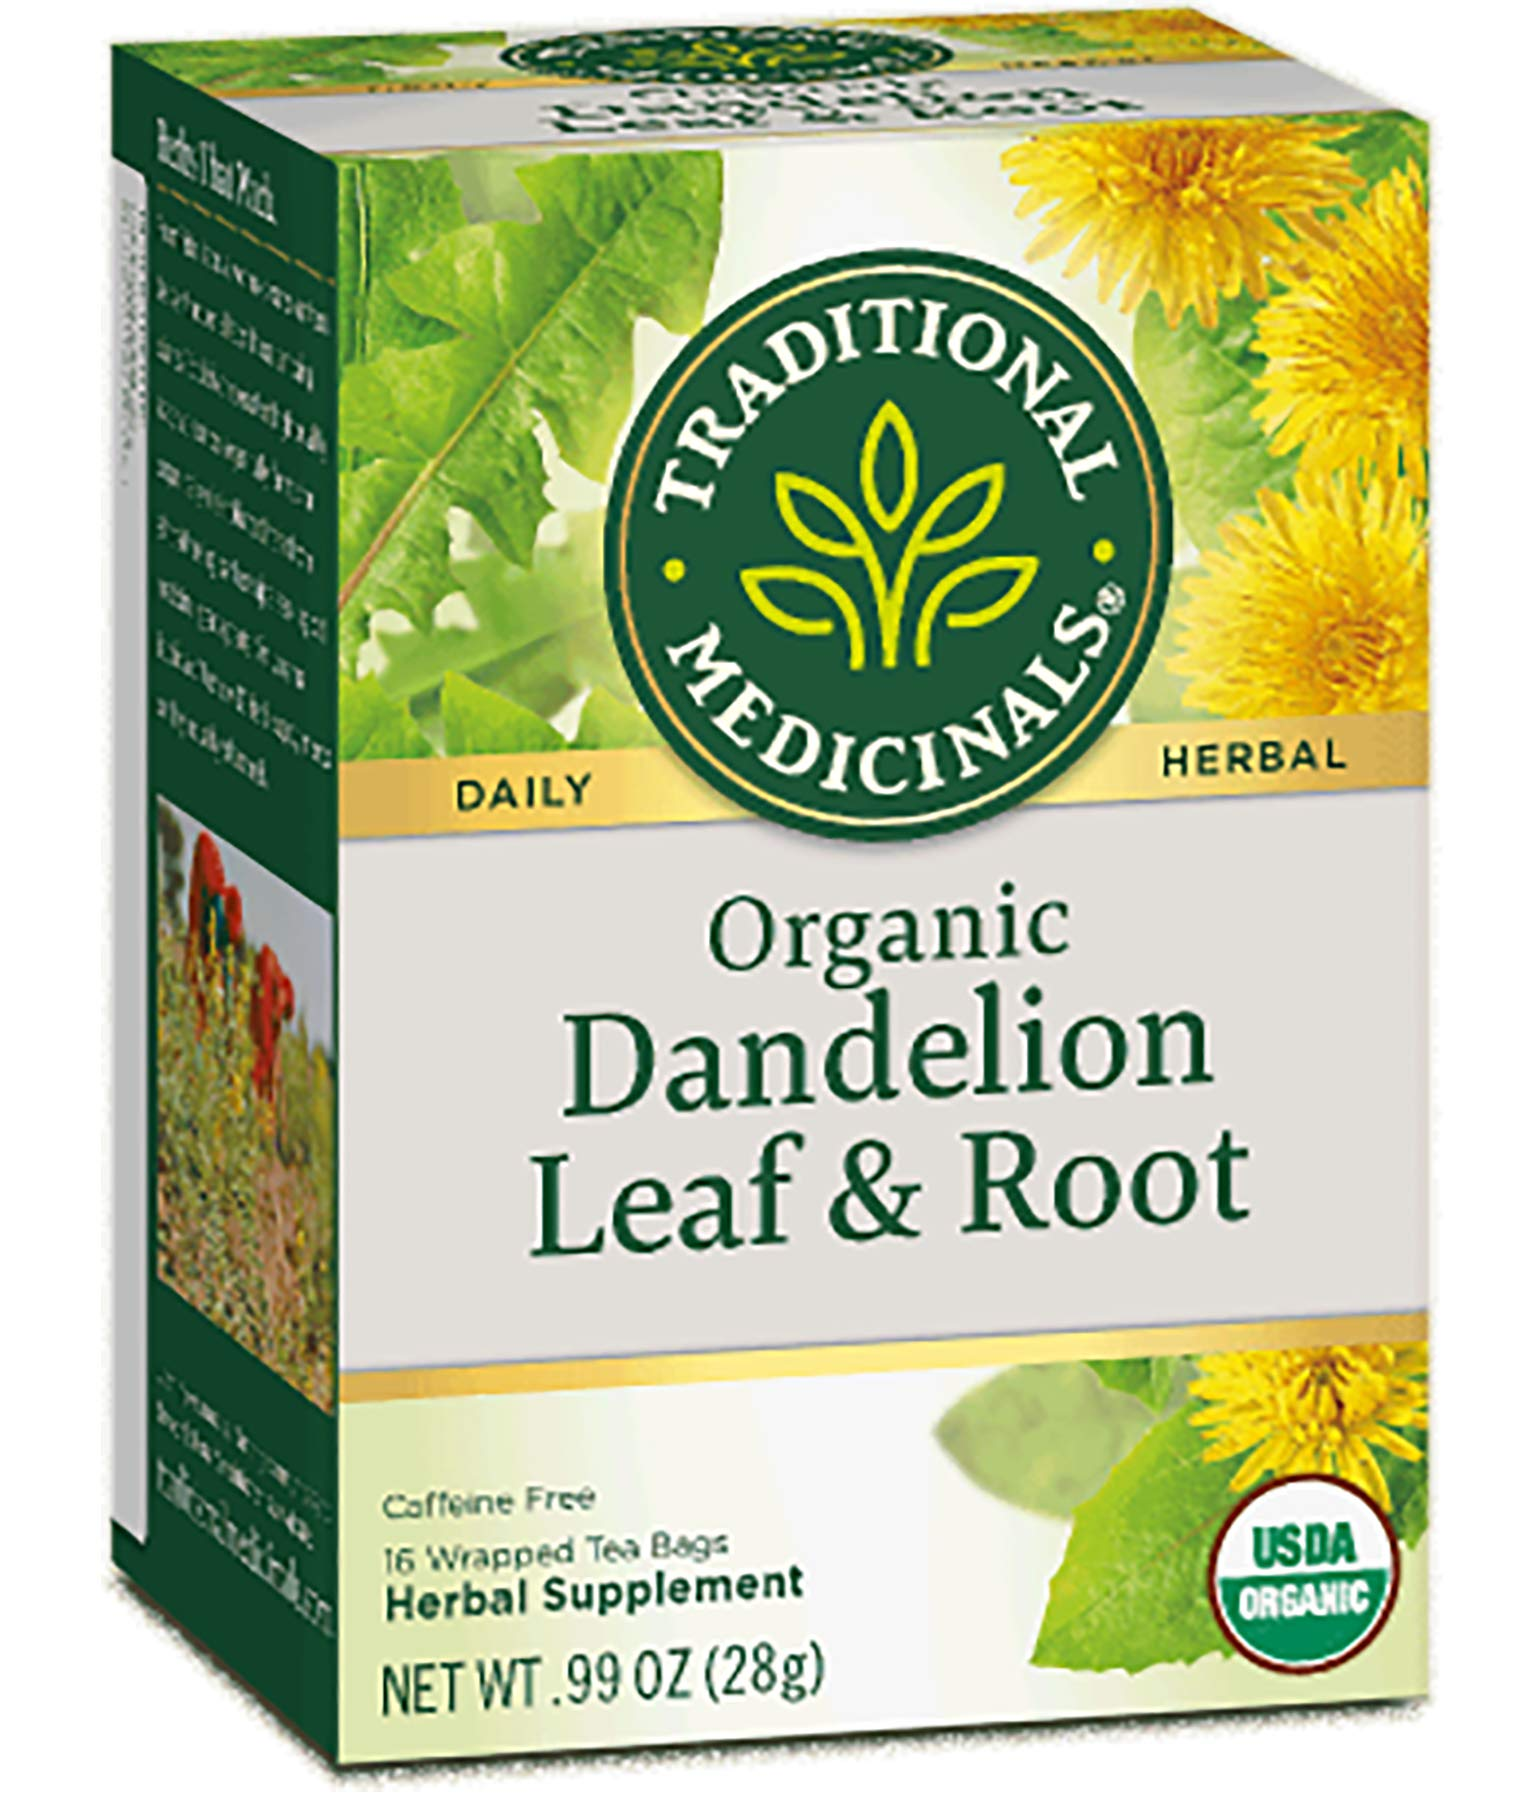 Traditional Medicinals Dandelion Leaf & Root Herbal Teas 16 Ea (Pack of 6) by Traditional Medicinals